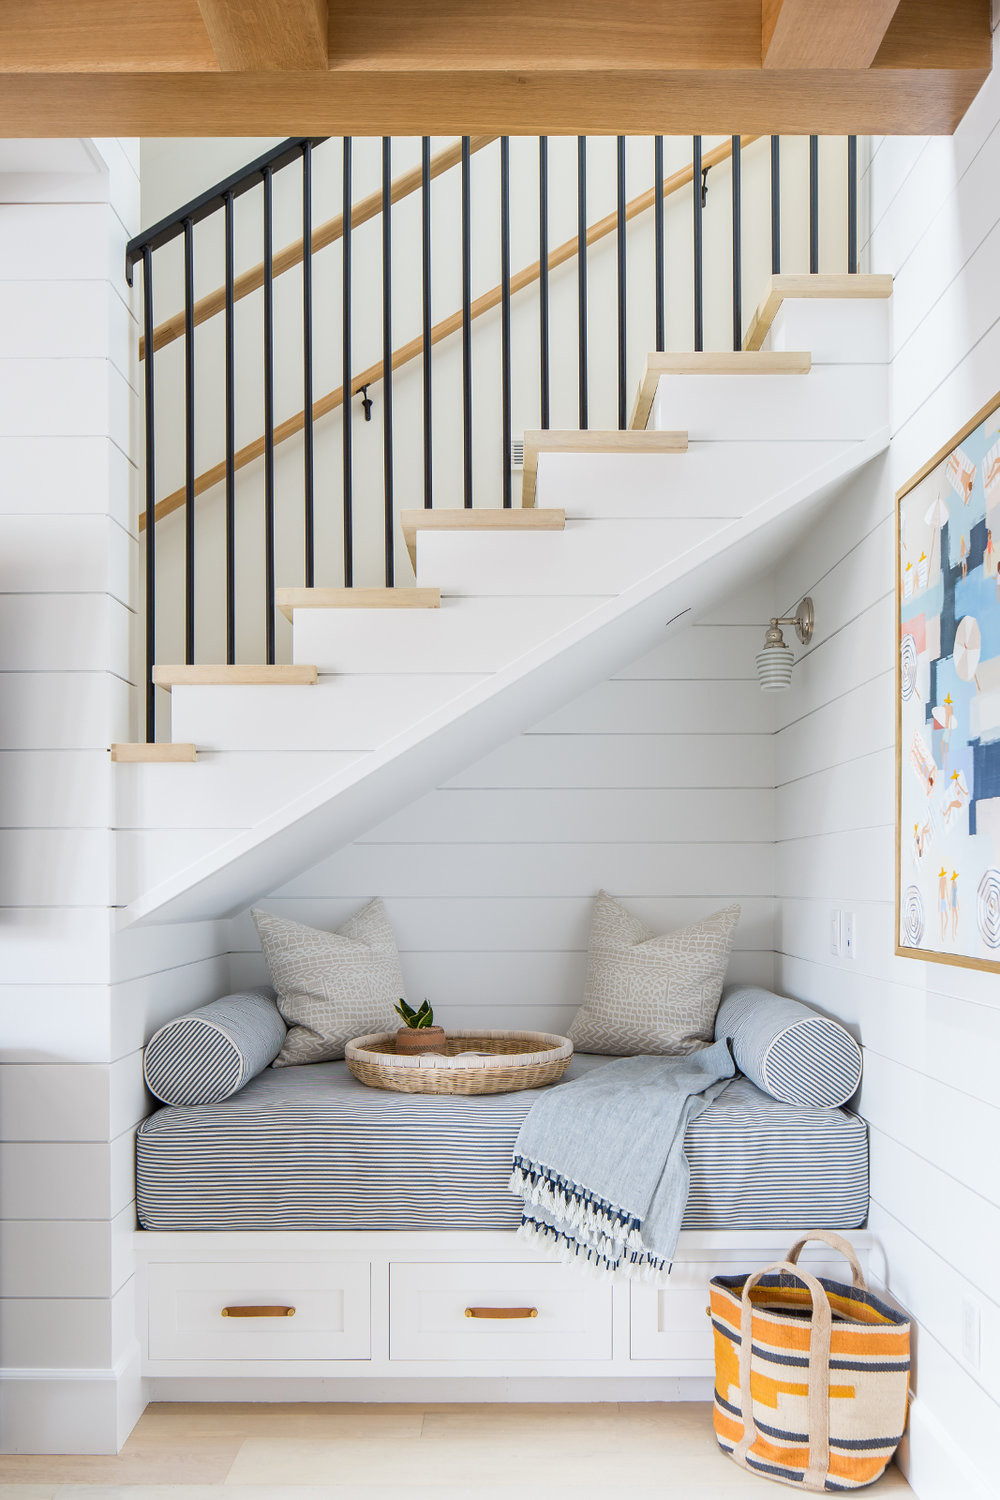 reading nook under stair way with three drawers grey foam mattress with throw pillow and blanket white shiplap detail stairs with wood treads black metal railing and hand rail woven basket abstract painting